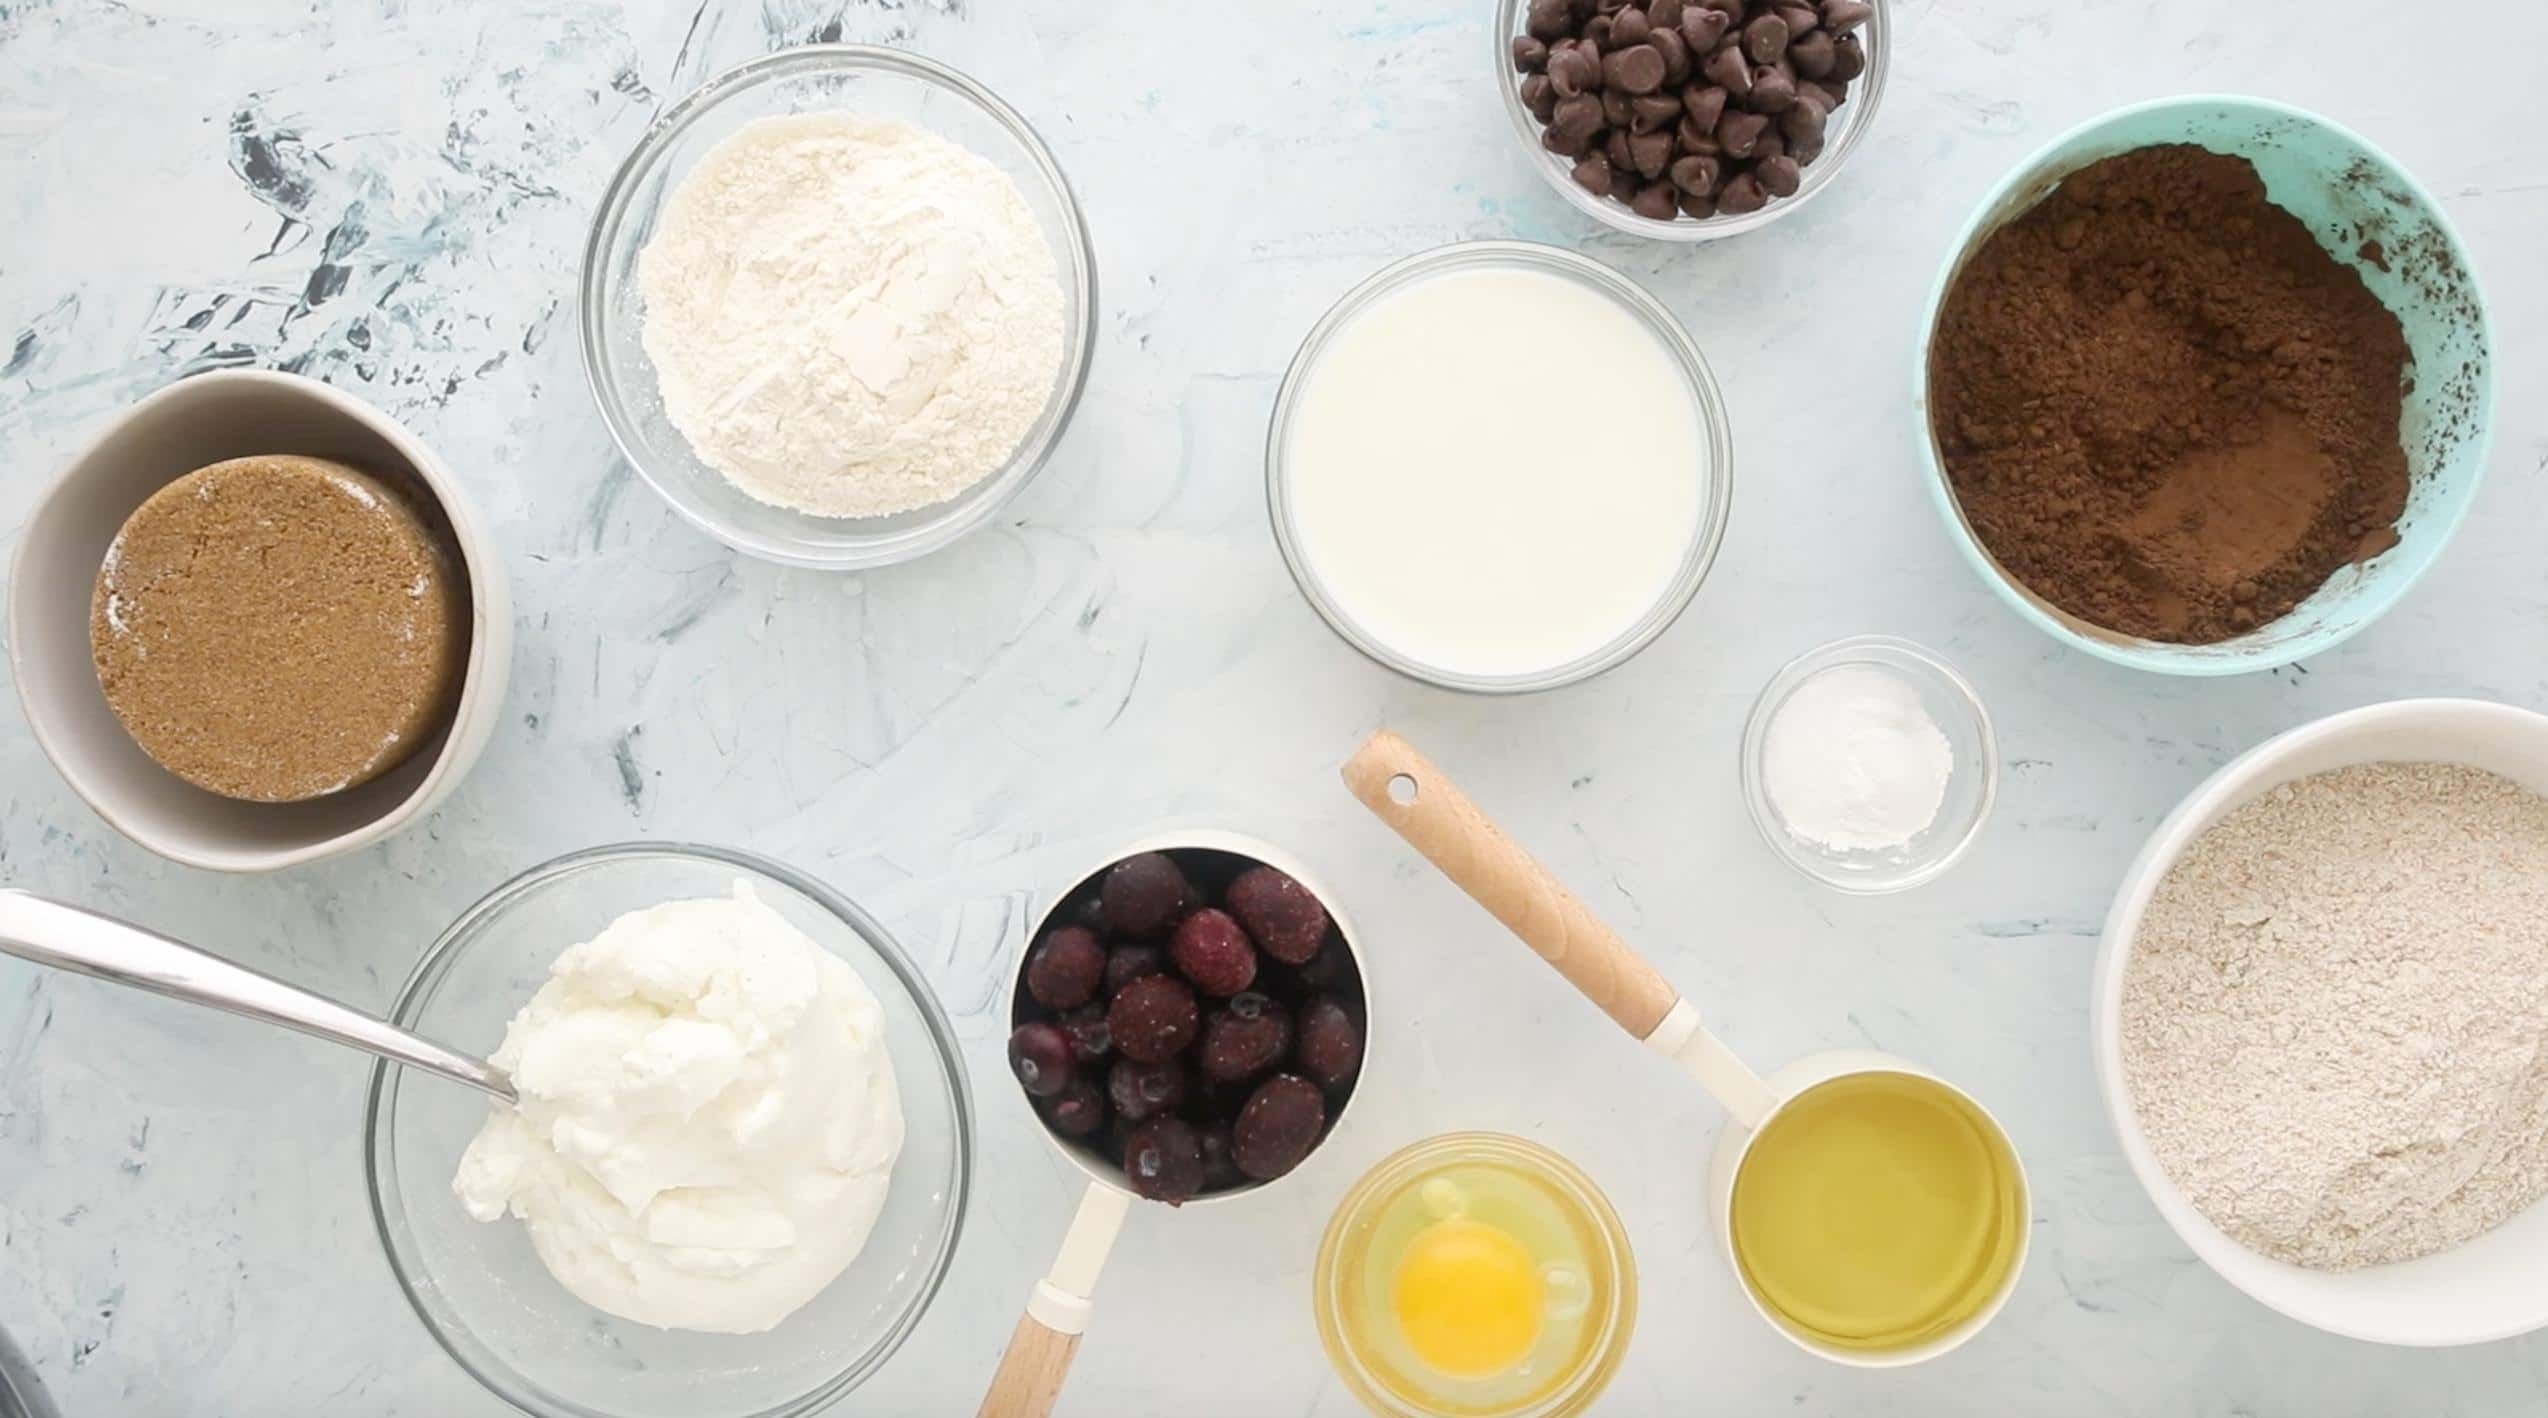 ingredients for chocolate blueberry muffins on a table